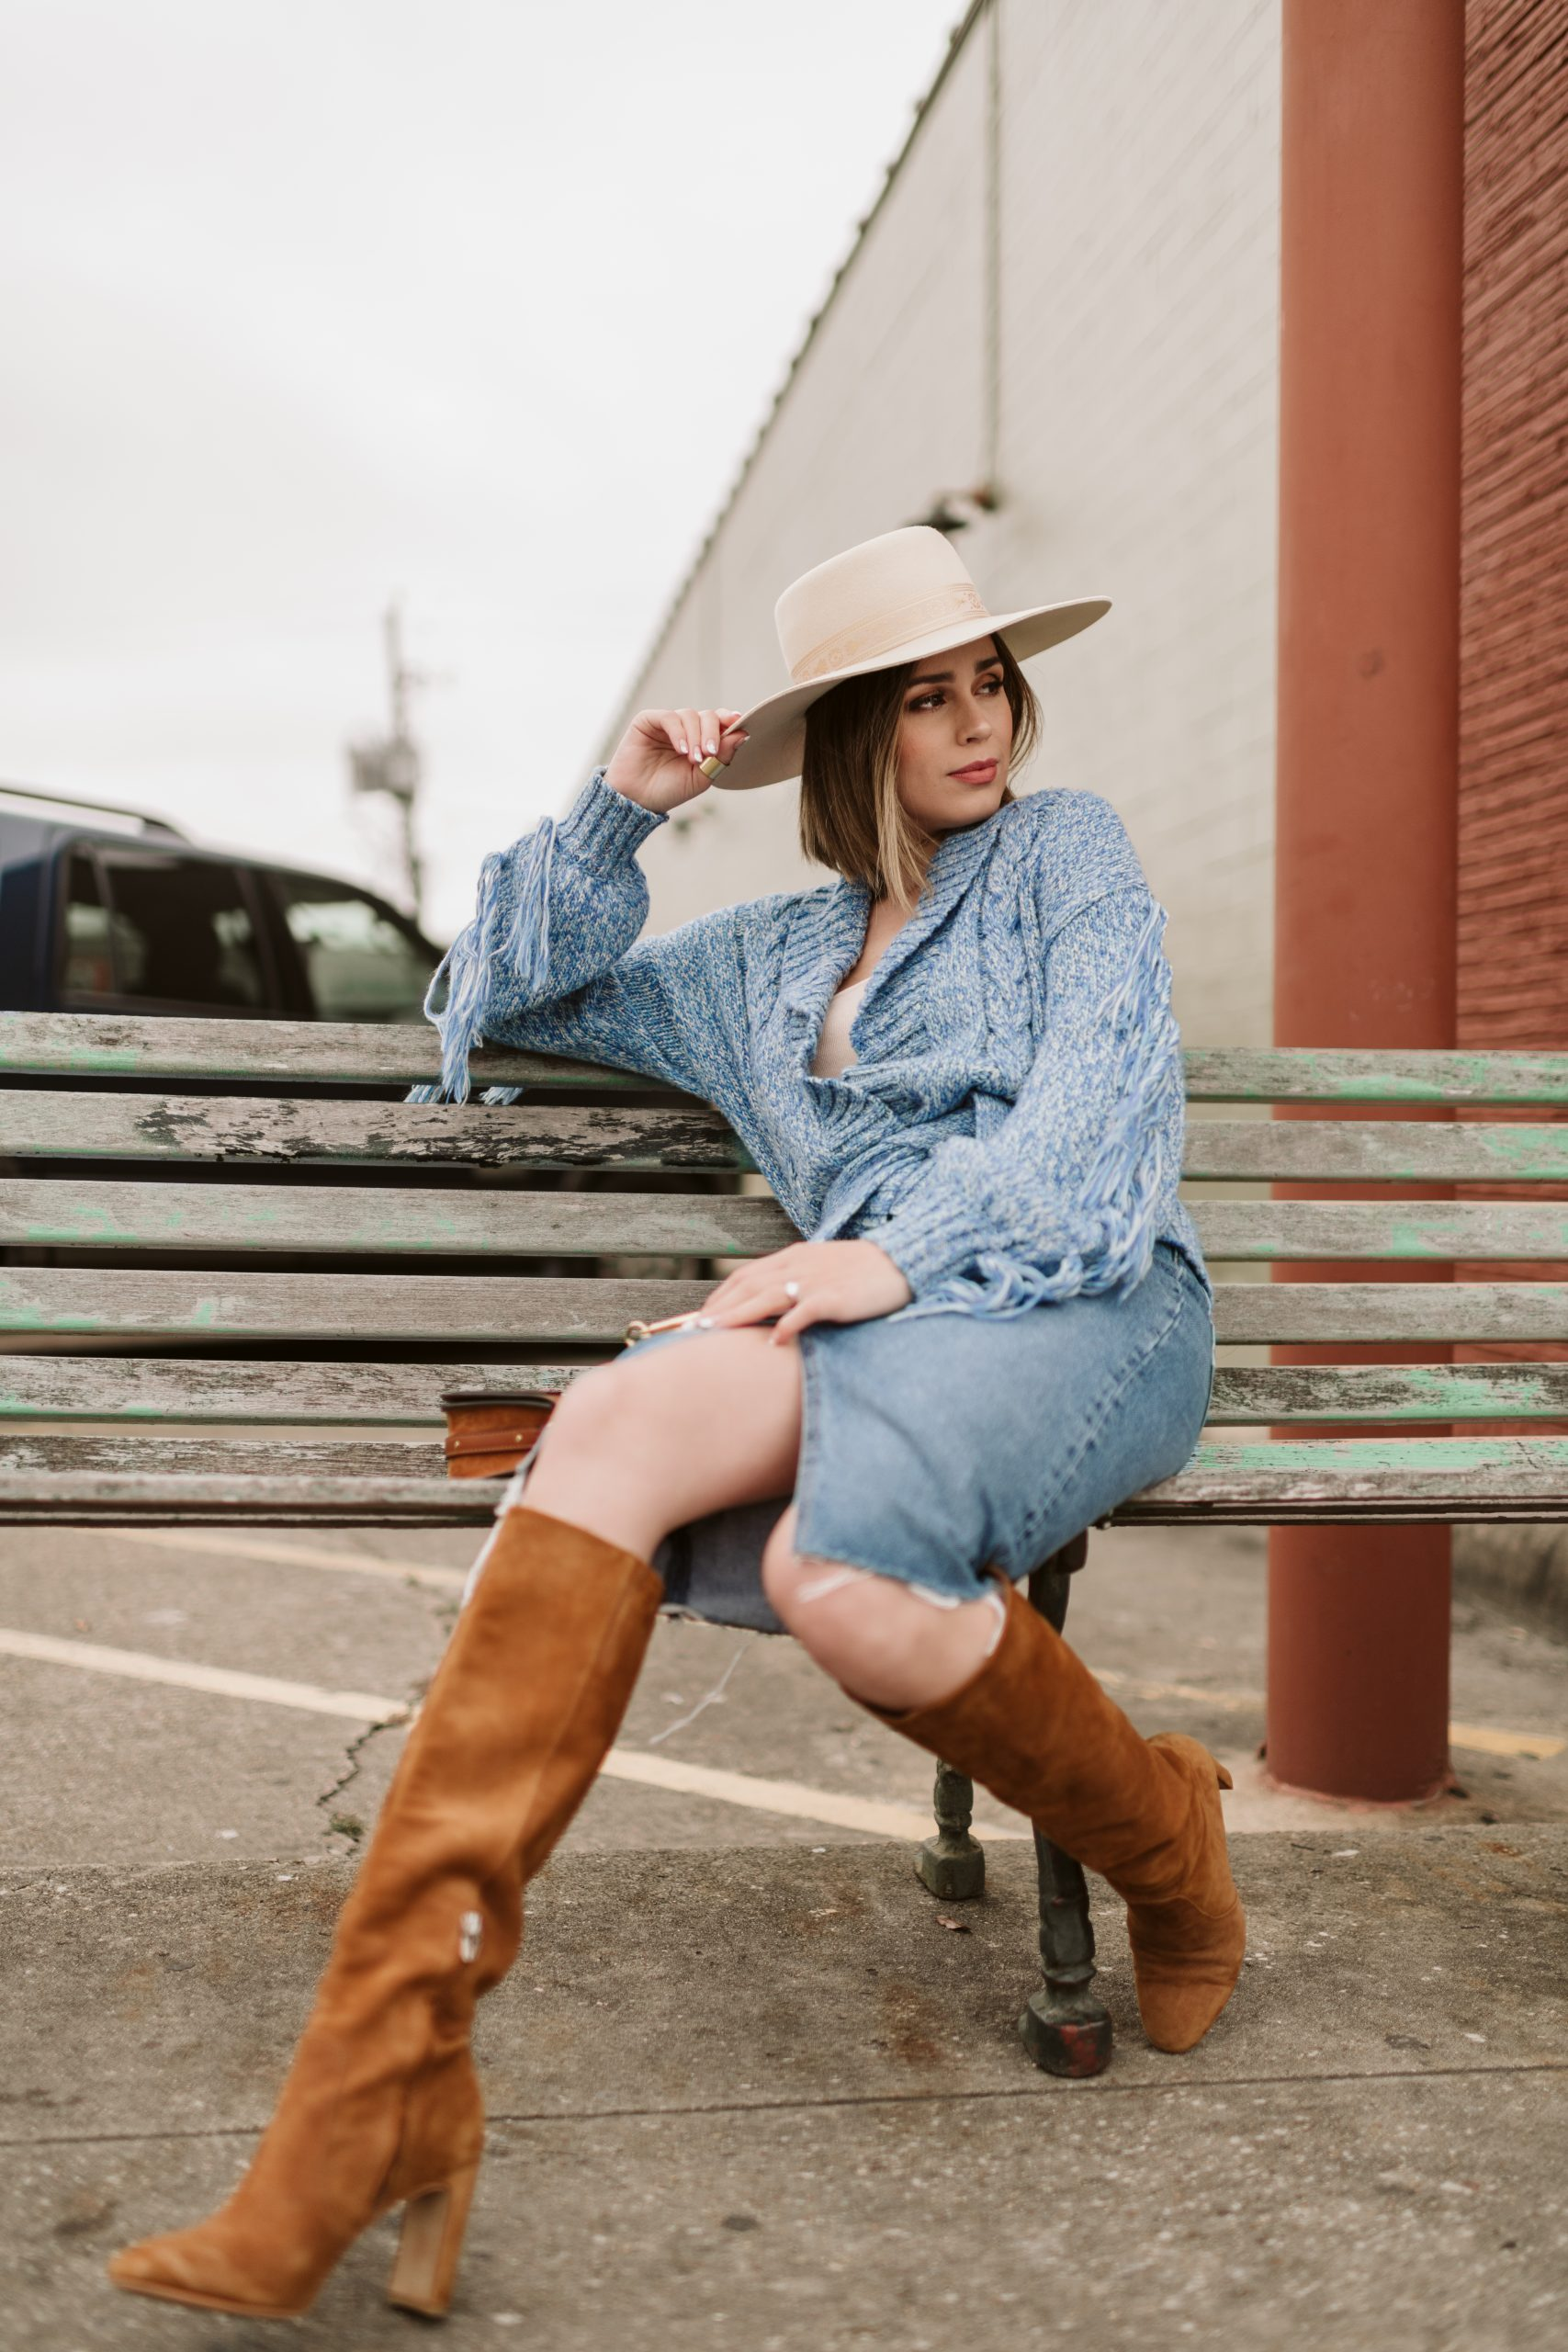 Houston fashion blogger Elly Brown wears a Lack of color felt hat with a fringe sweater from Revolve